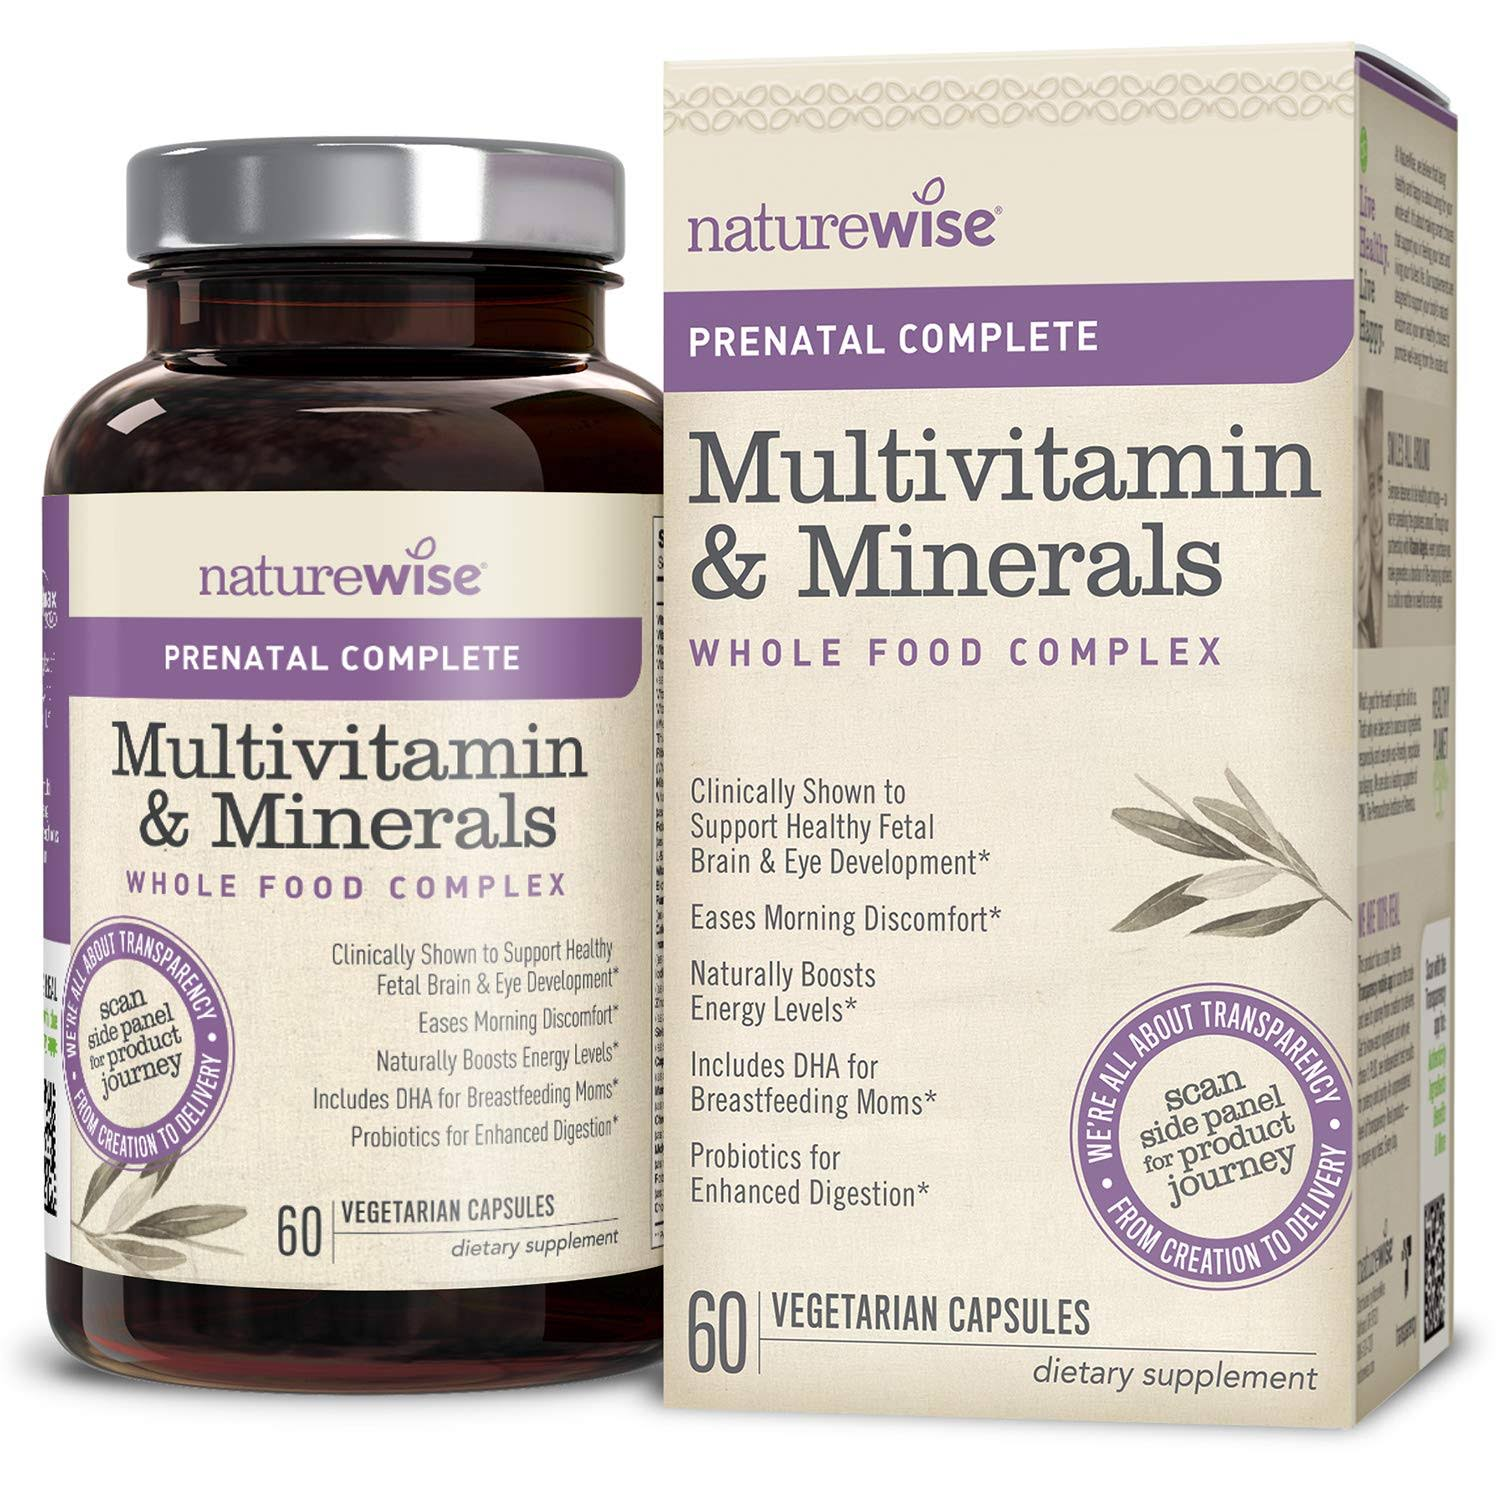 Naturewise Women's Prenatal Multivitamin